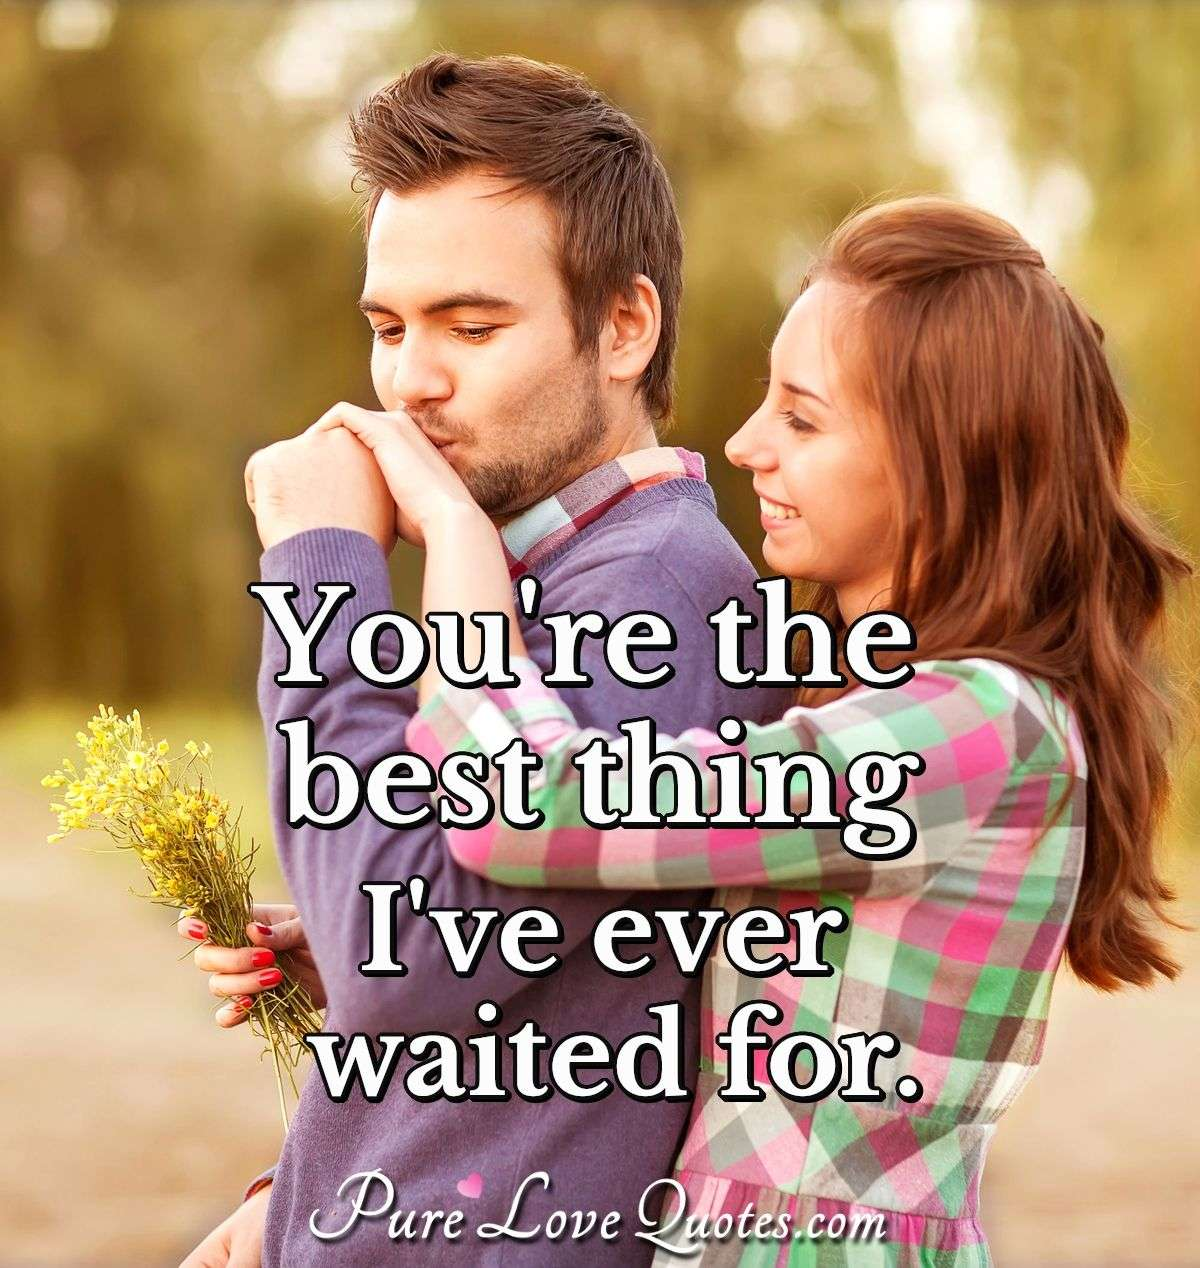 You're the best thing I've ever waited for. - Anonymous